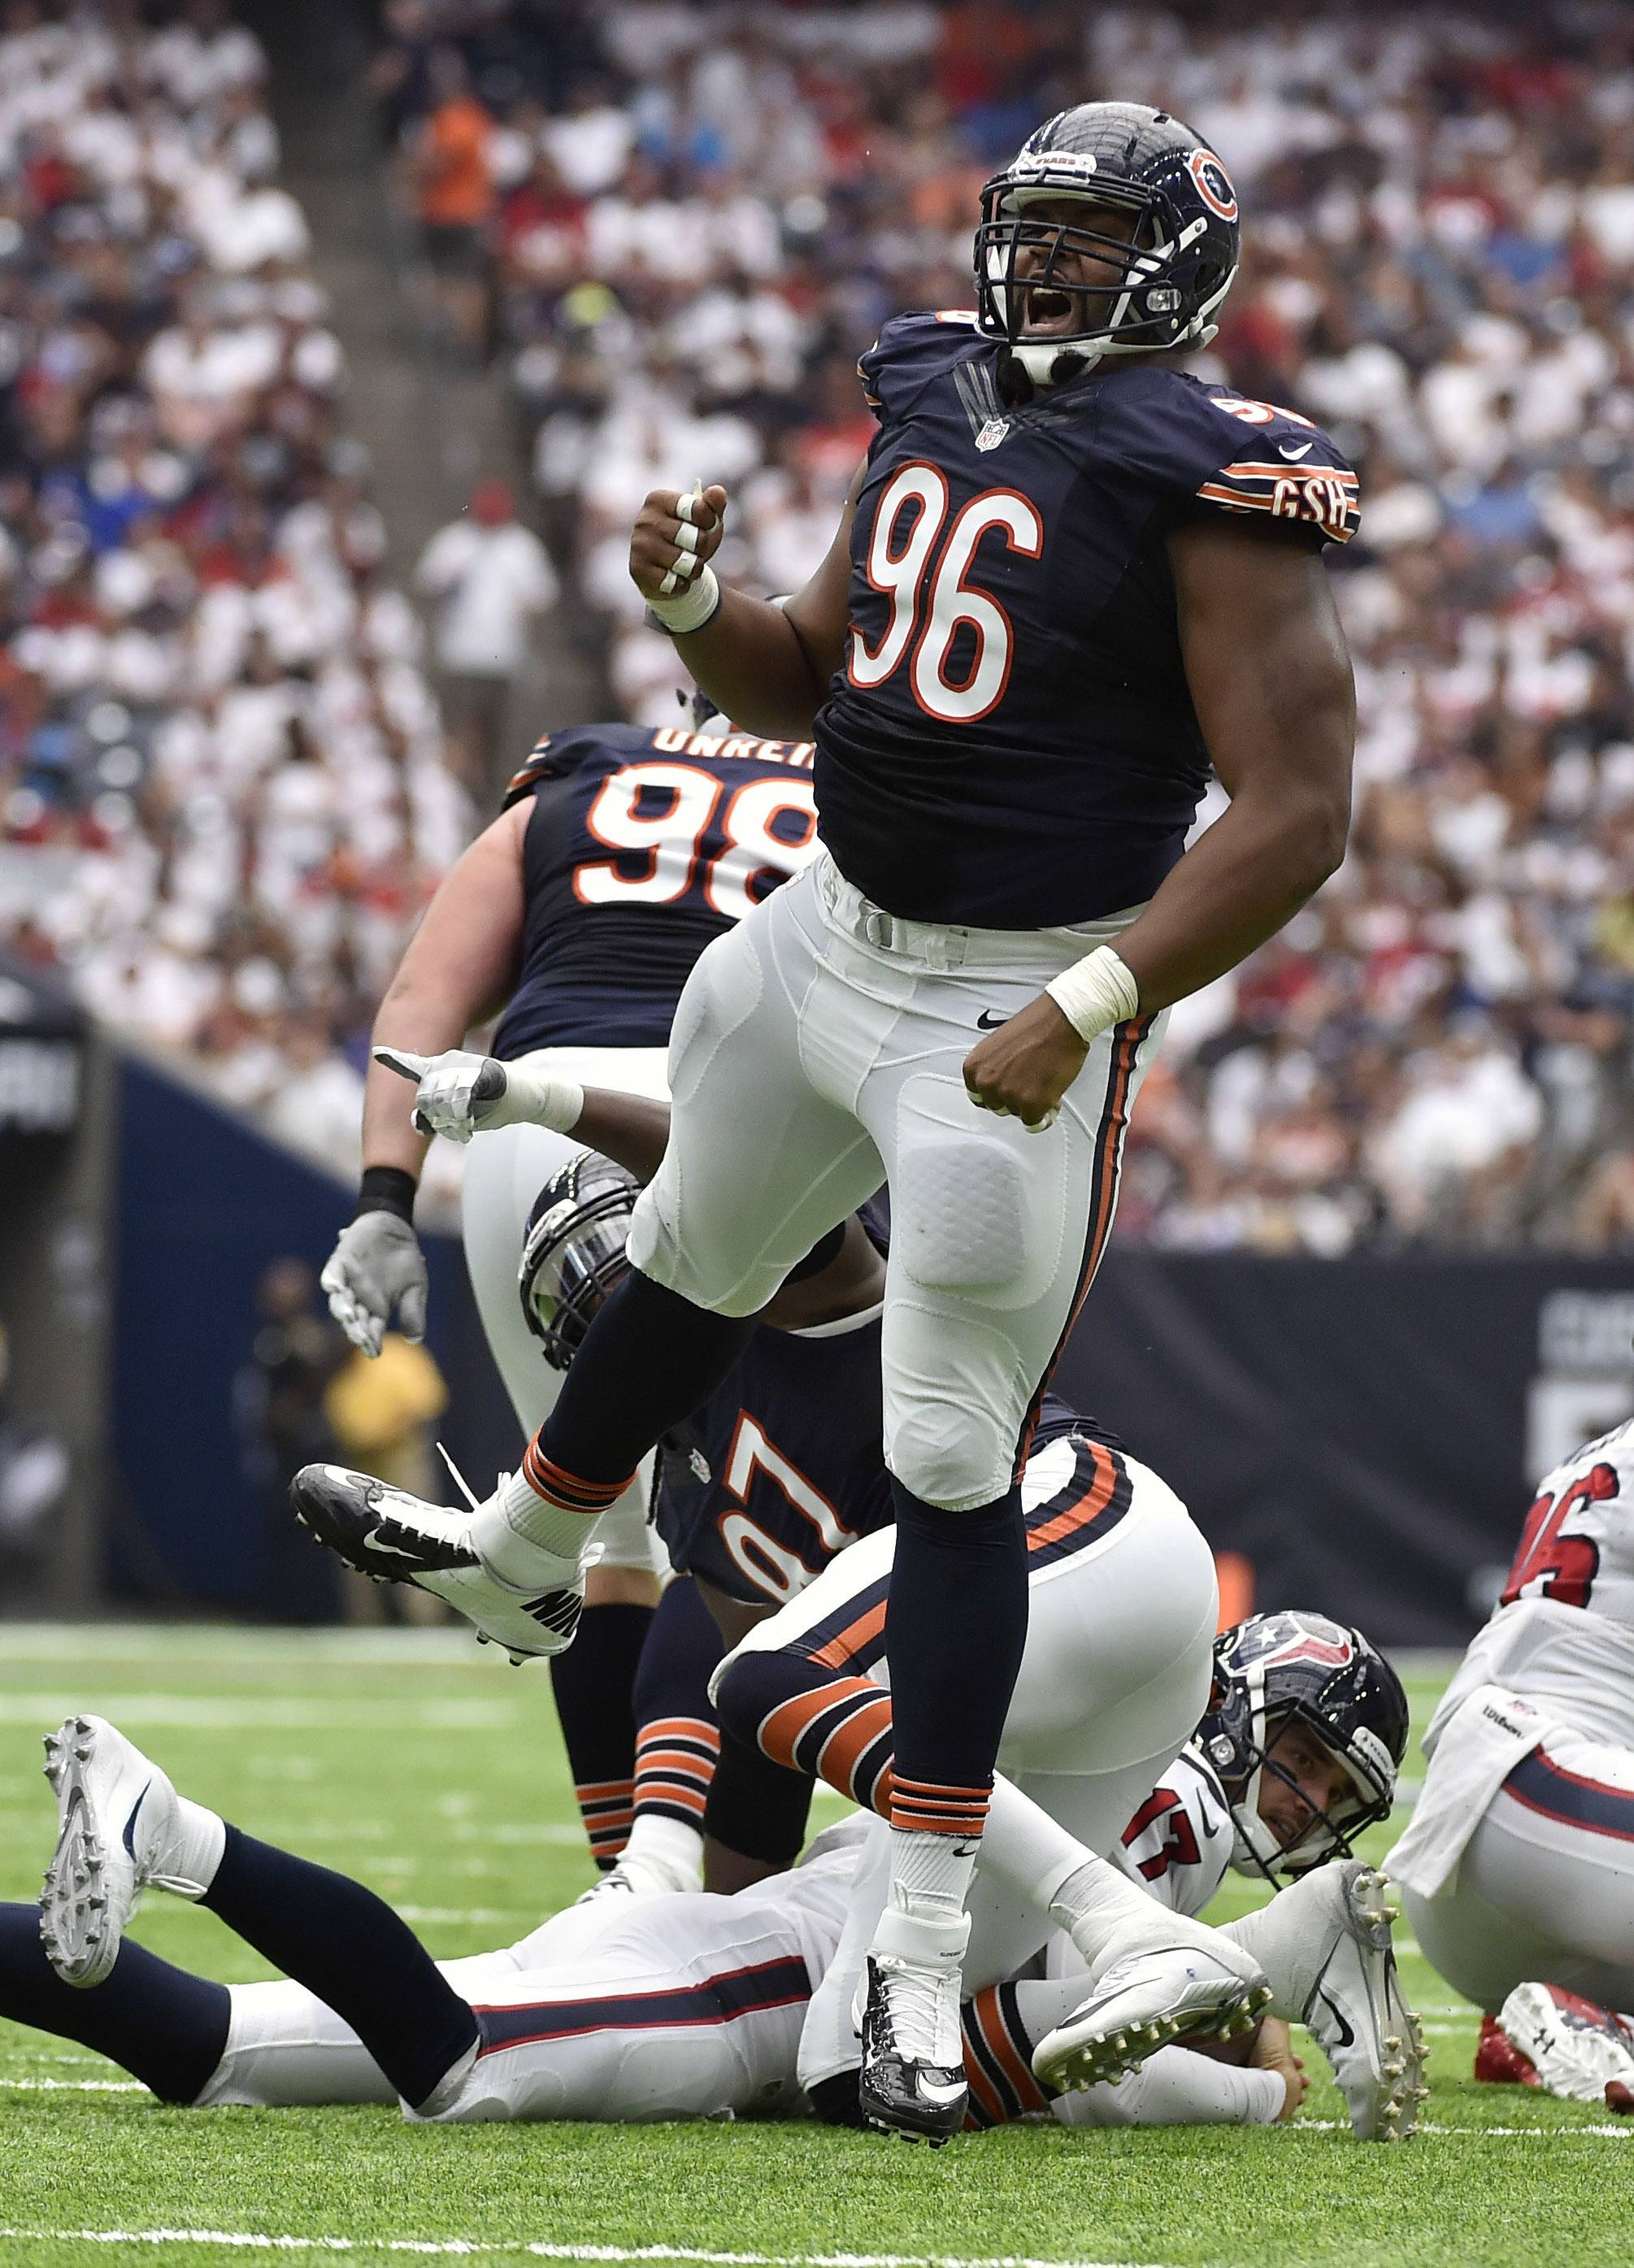 Bears defensive end Akiem Hicks celebrates a sack in last year's game against the Texans in Houston.